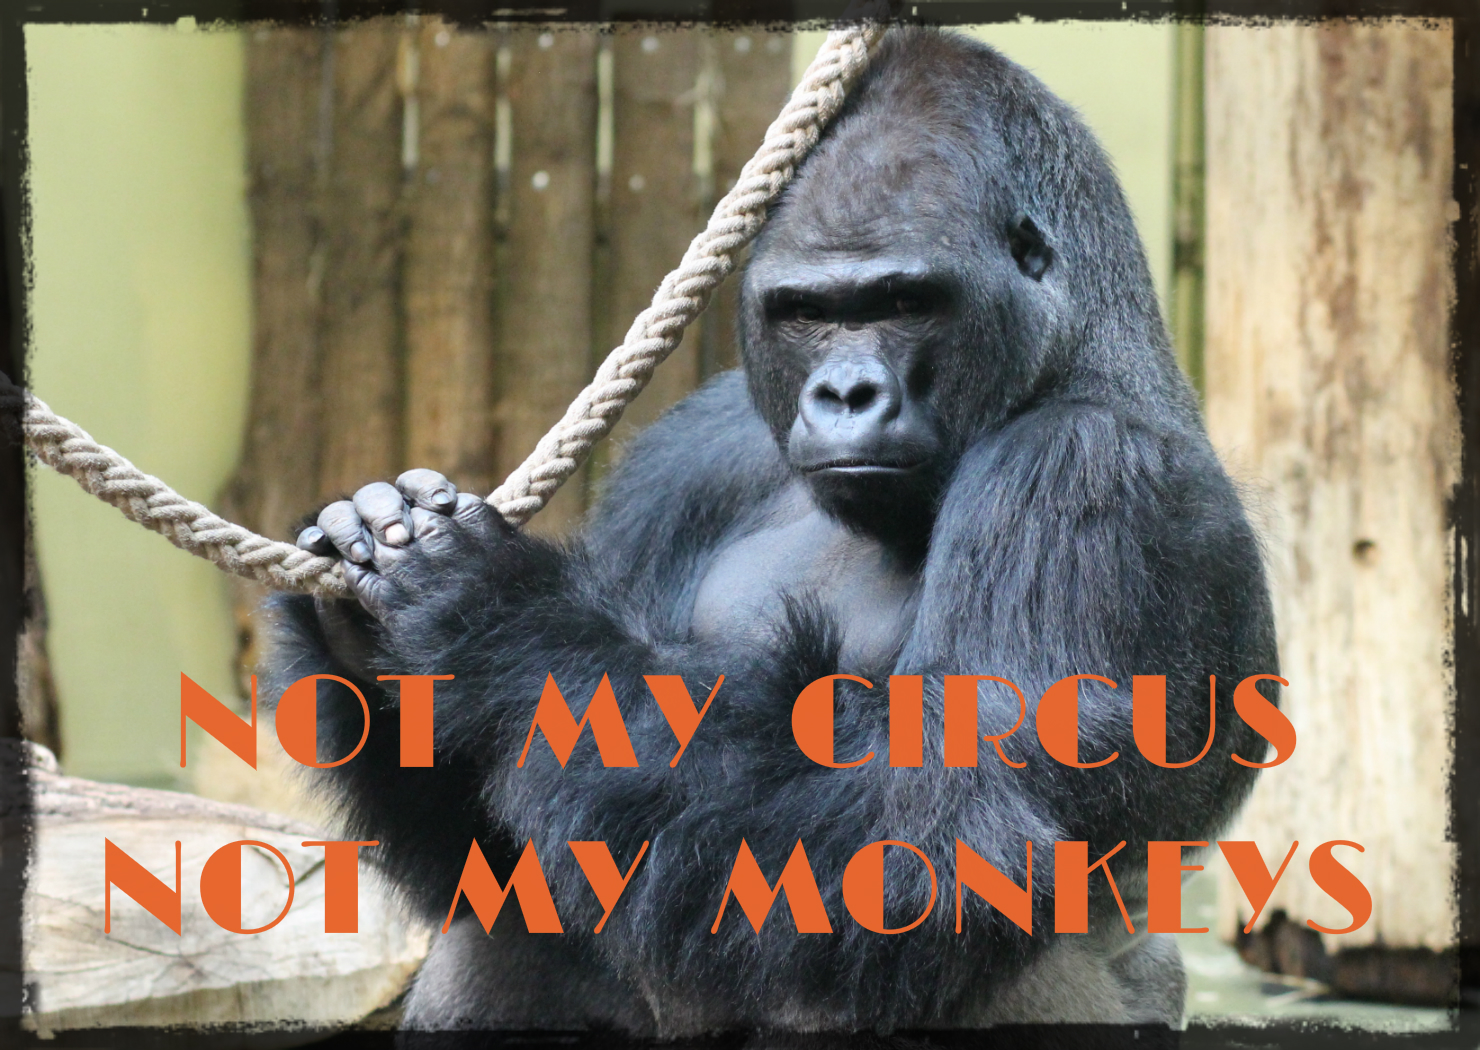 Not my circus - not my monkeys